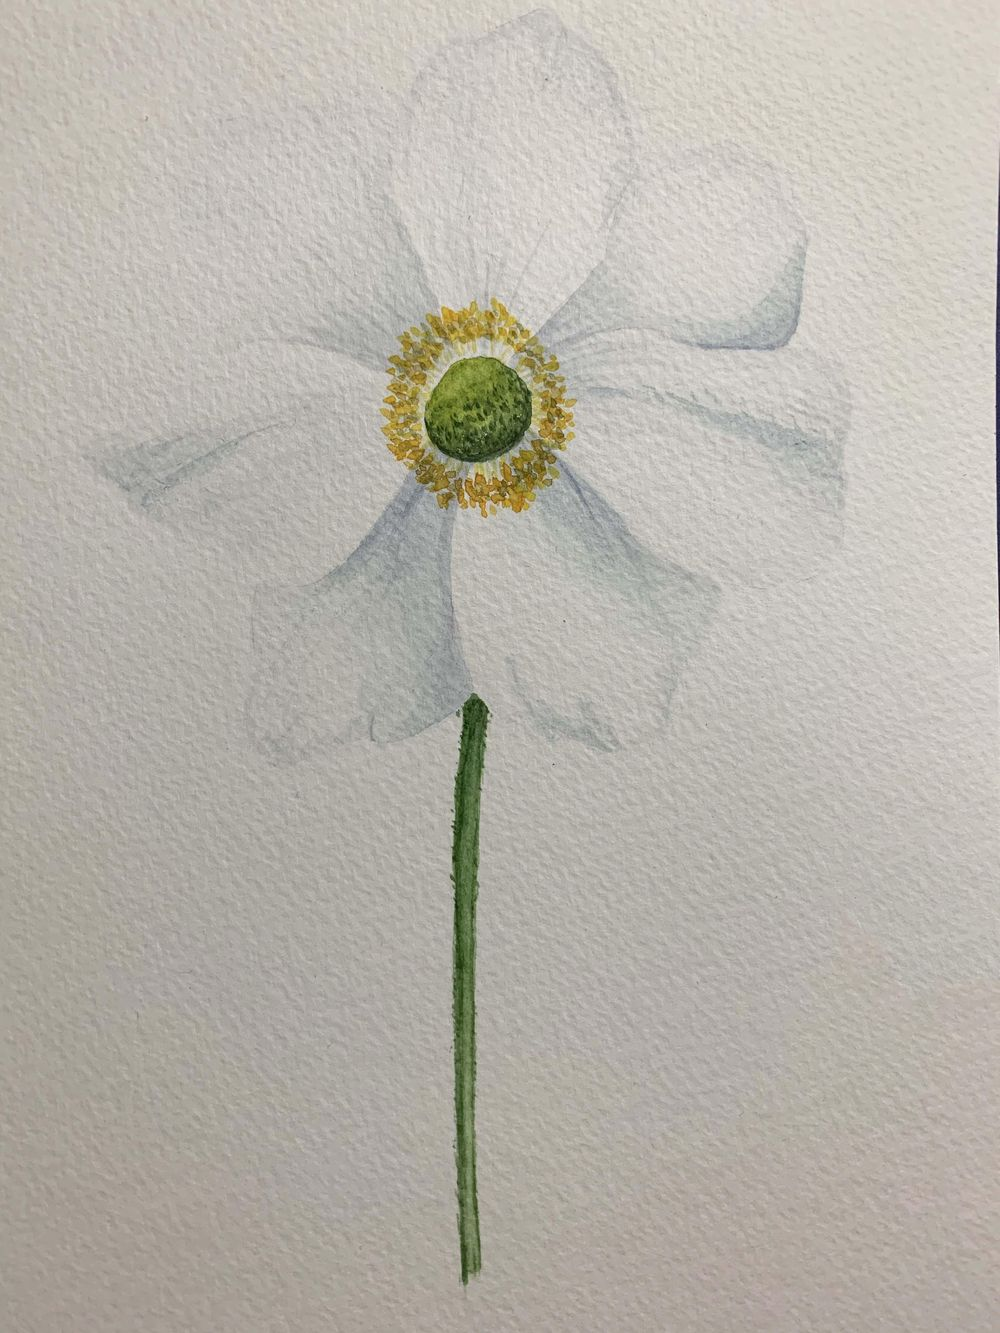 Snowdrops & Anemone - image 1 - student project